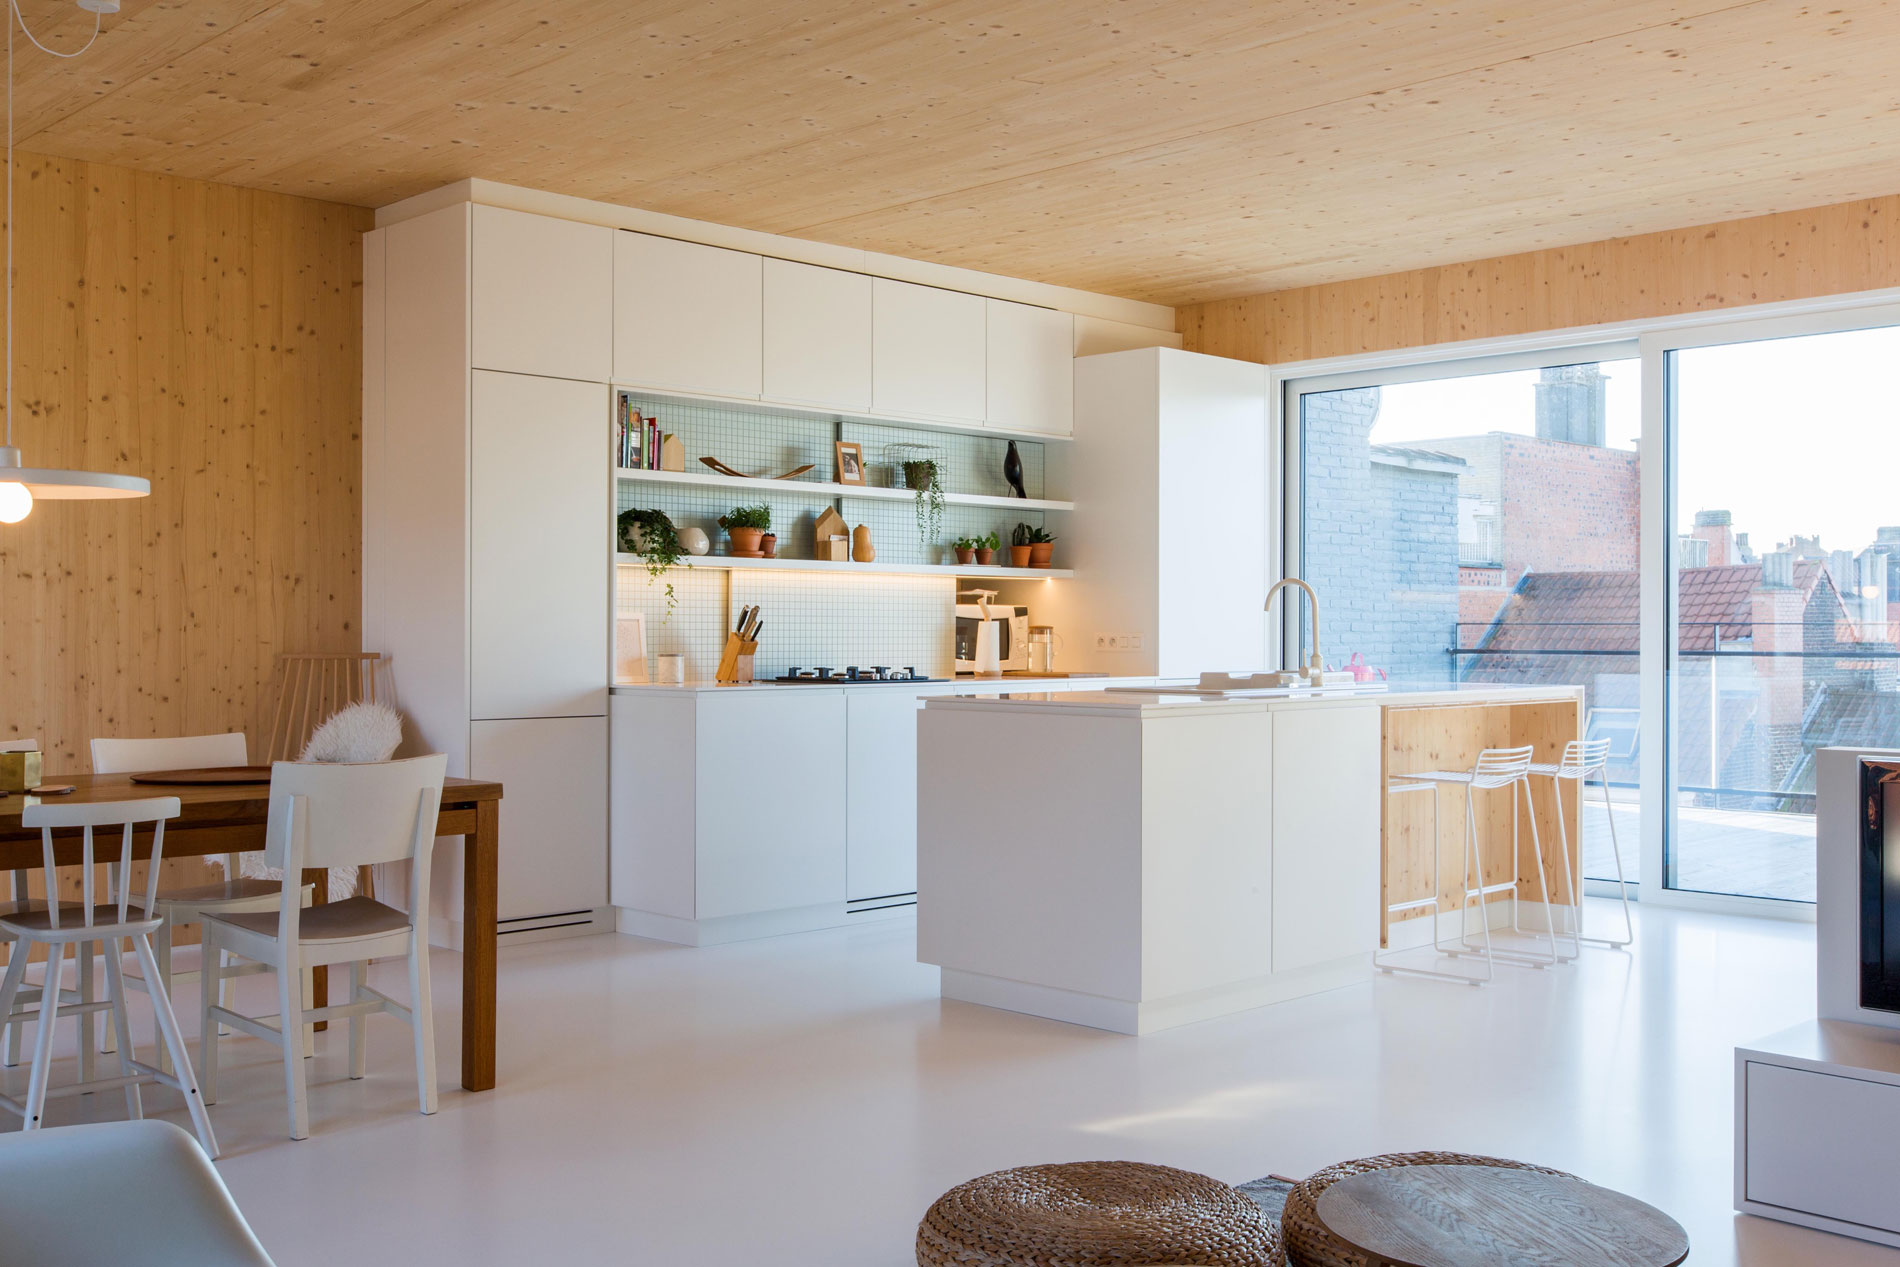 SPOTLESS ARCHITECTURE Designs a Wooden Home in Brussels, Belgium